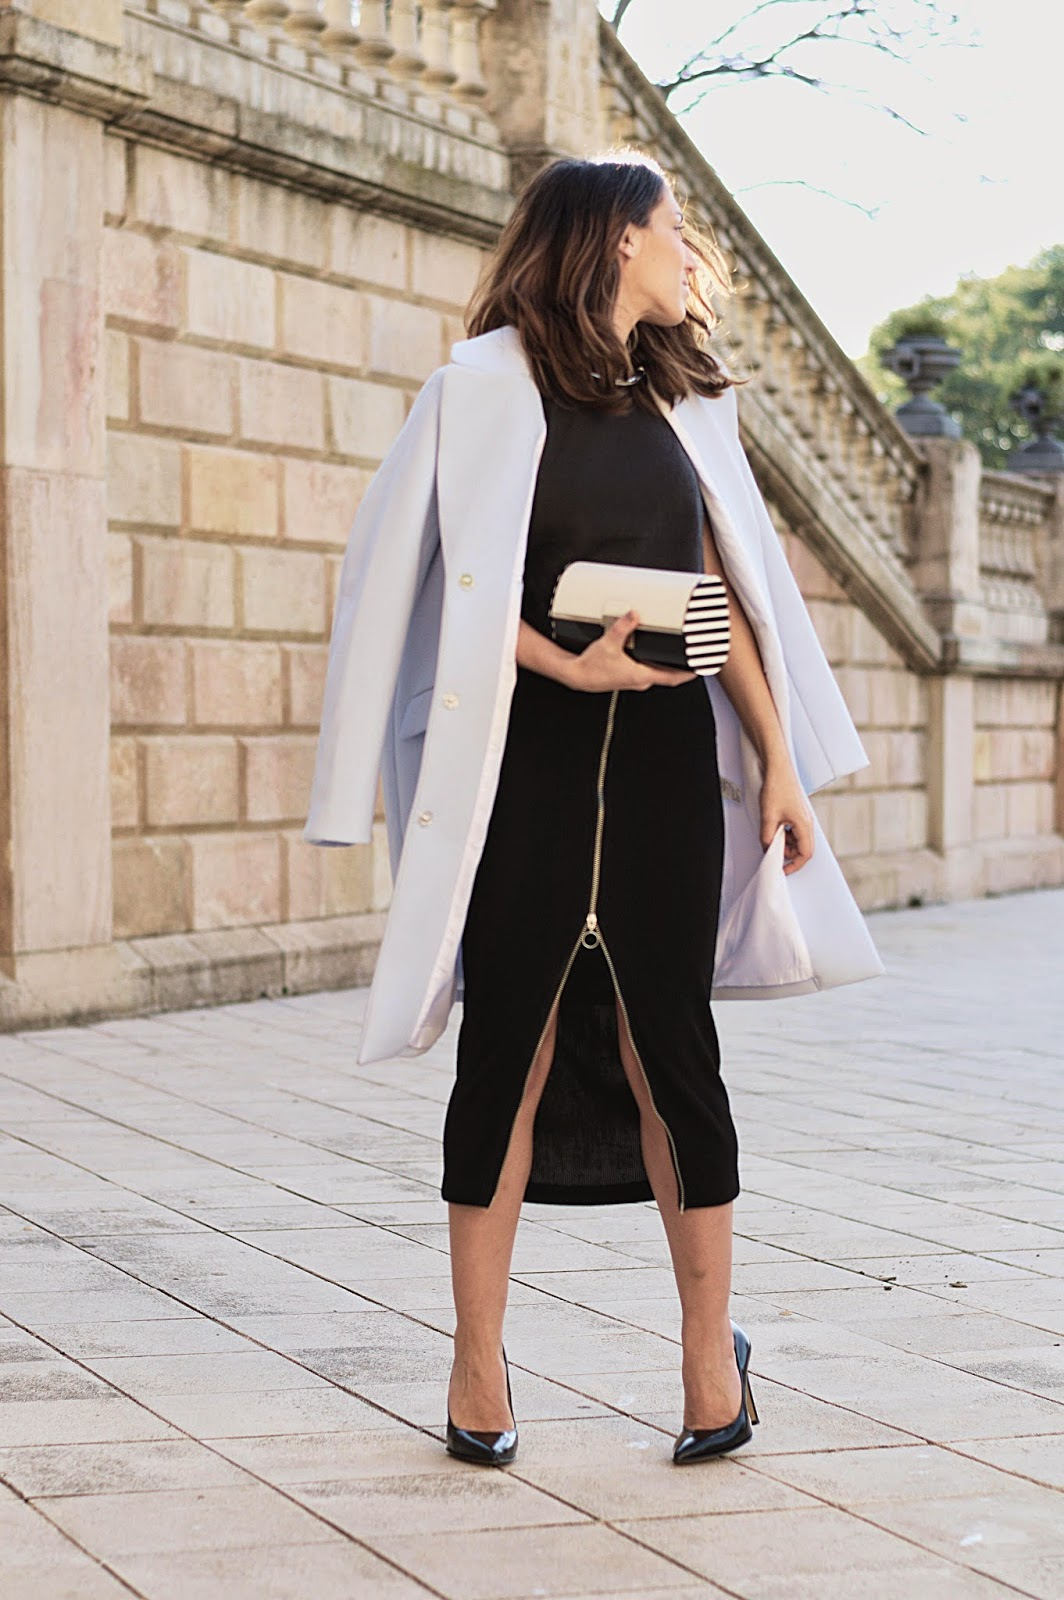 Total Look H&M, clutch Marc Jacobs